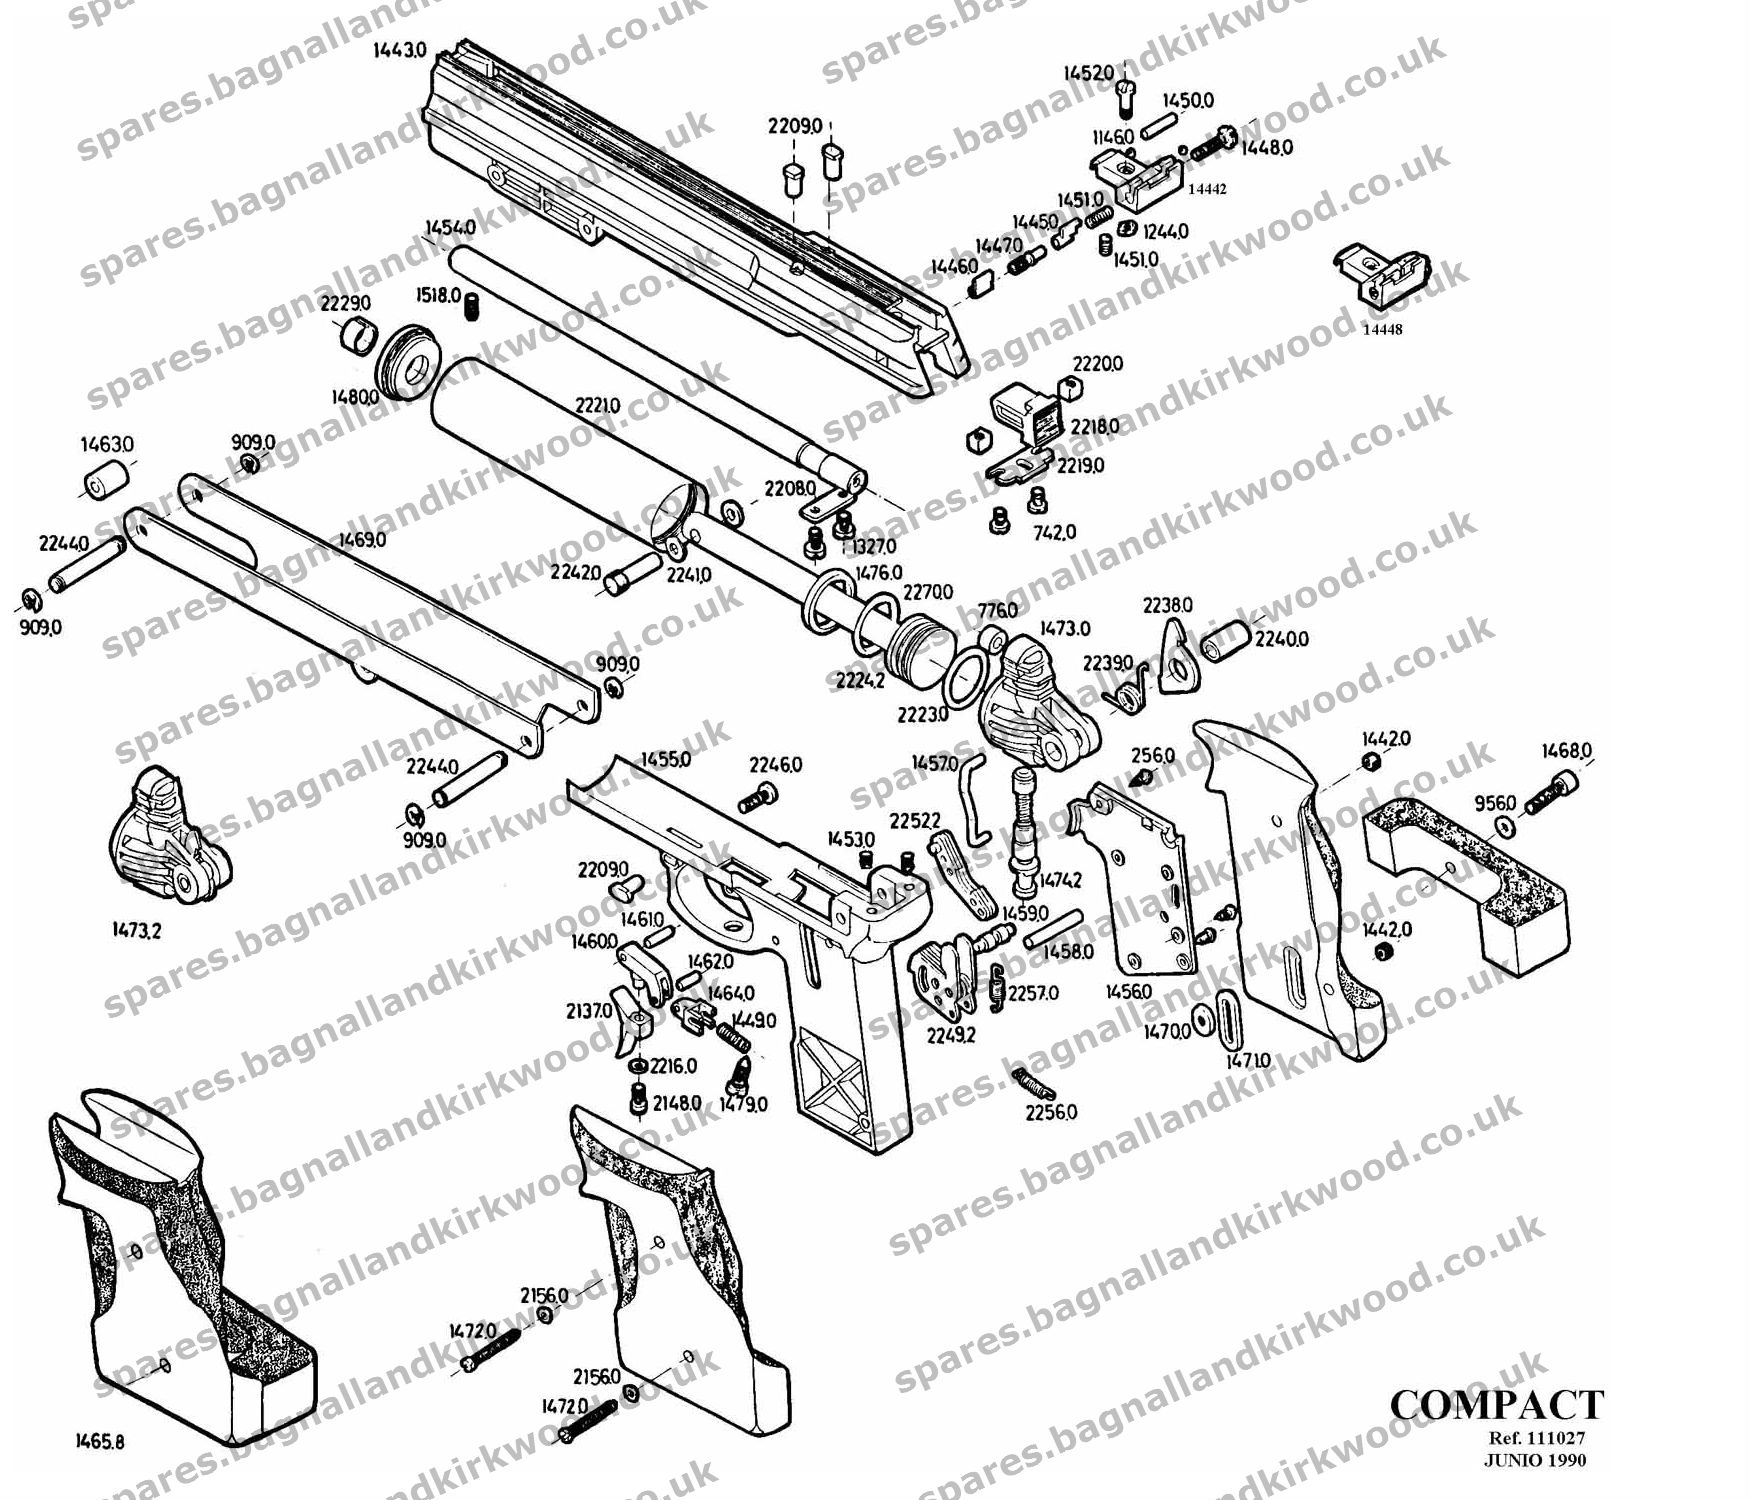 hight resolution of gamo compact air pistol exploded diagram parts list